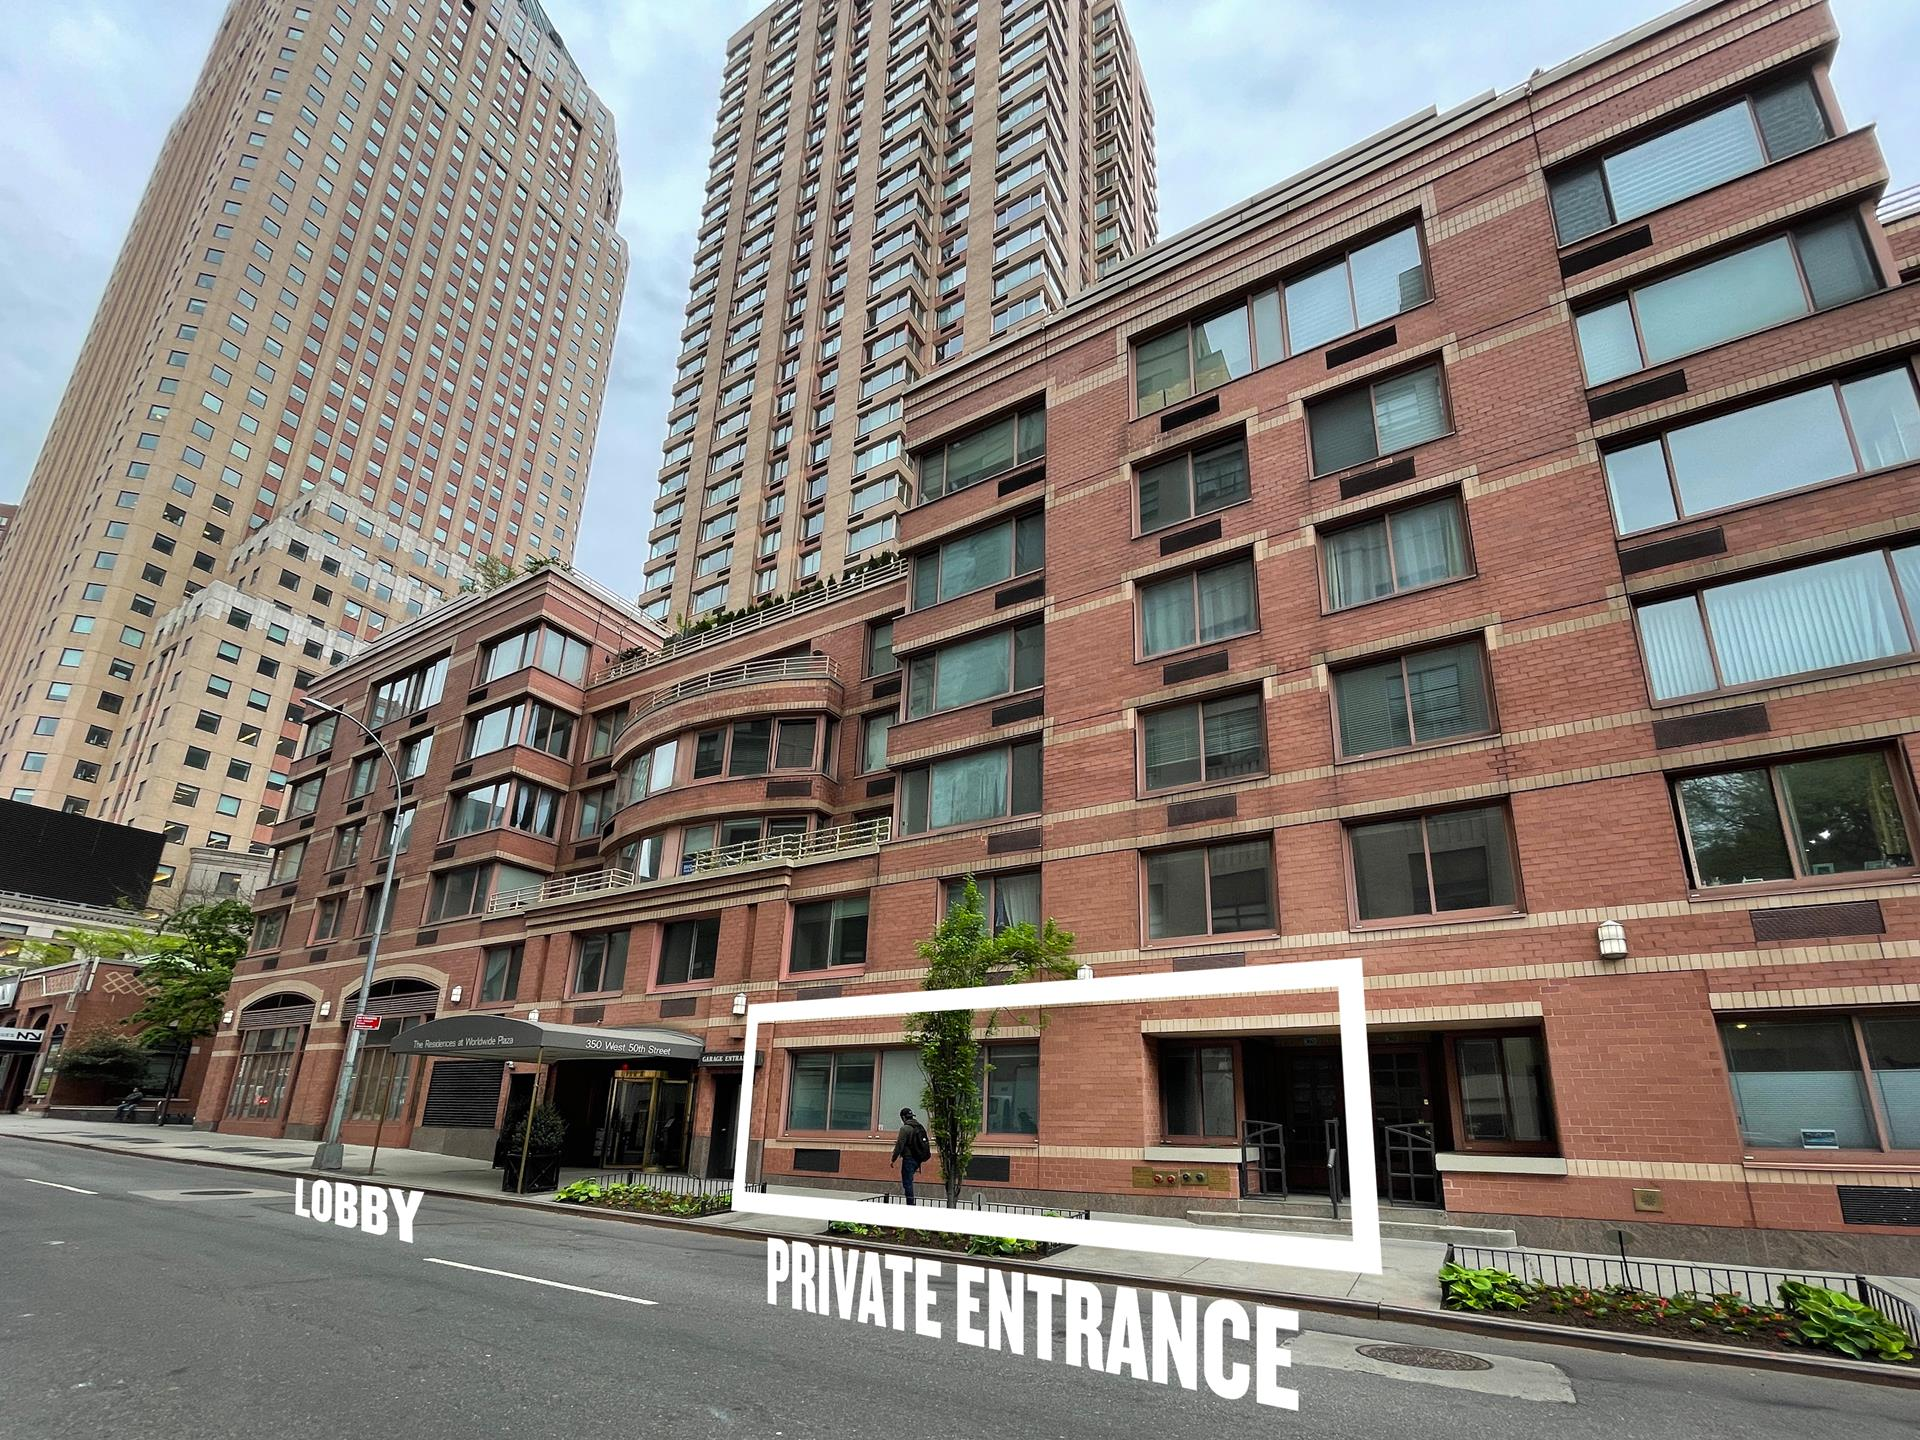 You are not dreaming! You can actually have it all - the exclusivity of your own Townhouse style condo, along with the complete services of a luxury condominium.      Direct and Private Access from the street and your own address: 360 West 50th Street as you enter. TH1G is a privately entered maisonette that is ideally situated next to the lobby of the famed Worldwide Plaza at 350 West 50th Street. It is one of a select   collection of townhomes that are sequestered within the condominium complex and, in addition, happens to be the largest of the units, measuring almost 900 square feet. Such a property rarely becomes available and has the added bonus of having been legally   zoned as a residential live-work space that allows the option of a professional office to operate or use it as live-work if you prefer.      The condo's interior features 10 ft. high ceilings, a large separate bedroom or large office, den, washer/dryer, marble bathroom, ample closet space throughout, new wood floors, and oversized windows.      At this renowned New York City condominium, you will also enjoy panoramic Manhattan skyline views from the magnificent roof deck, a landscaped courtyard, and a lush, beautiful garden, along with 24-hour doorman, concierge, cold storage, and the opportunity   to join the health club next door that offers a swimming pool and gym. Currently, there is a monthly assessment of $227 until 9/2022.      Don't wait to schedule a viewing today for this one-of-a-kind property!